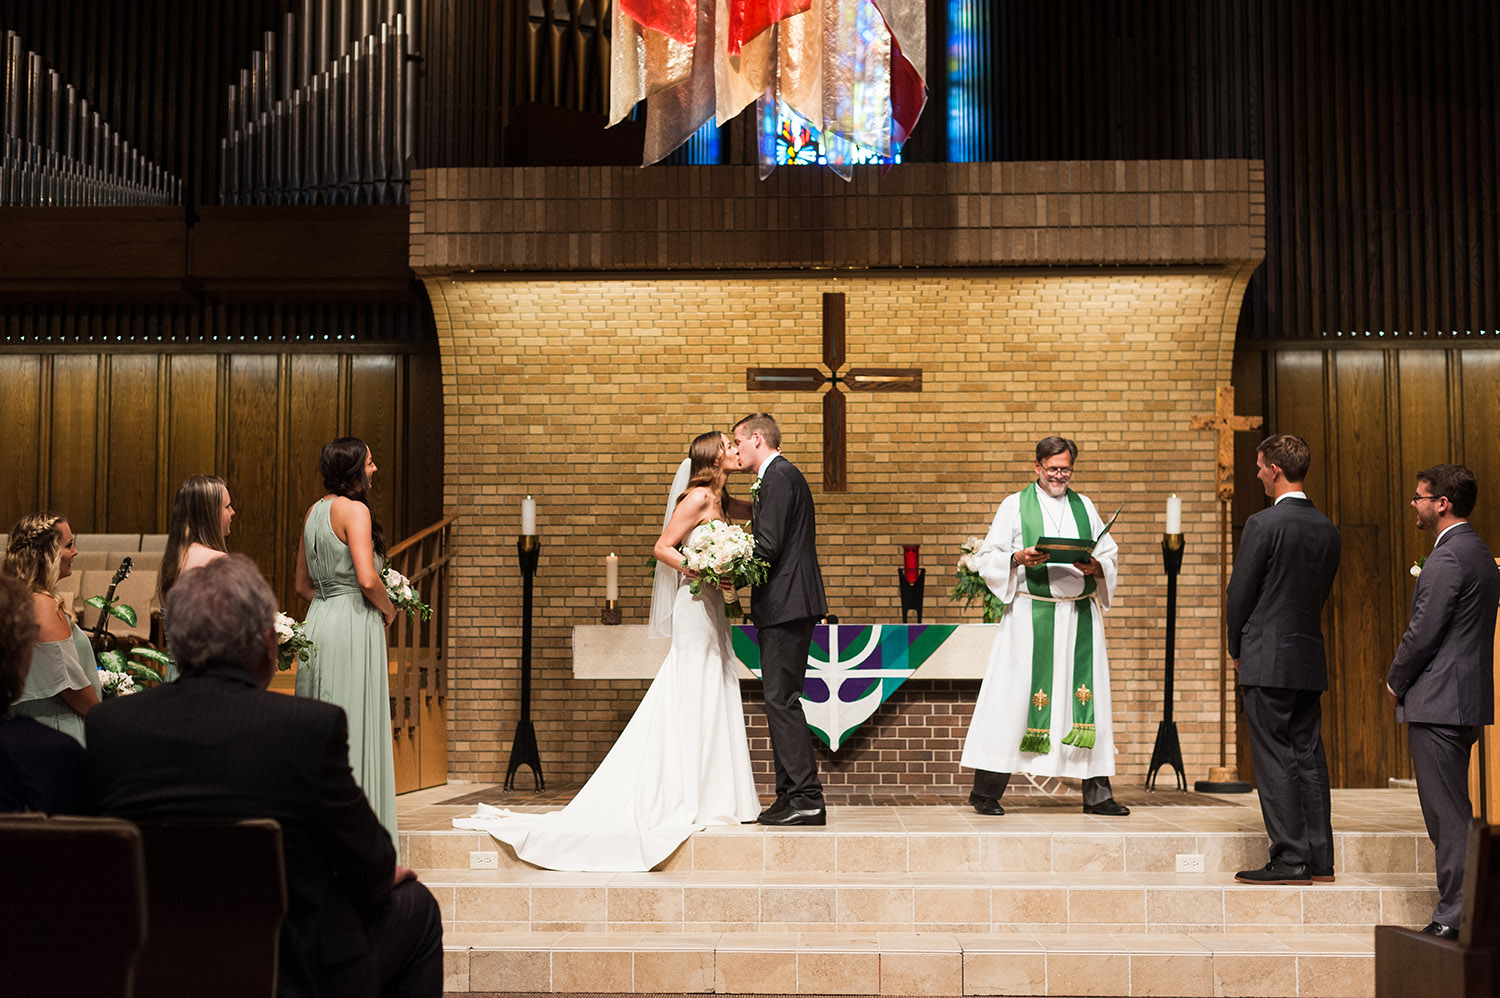 bride and groom getting married in a church